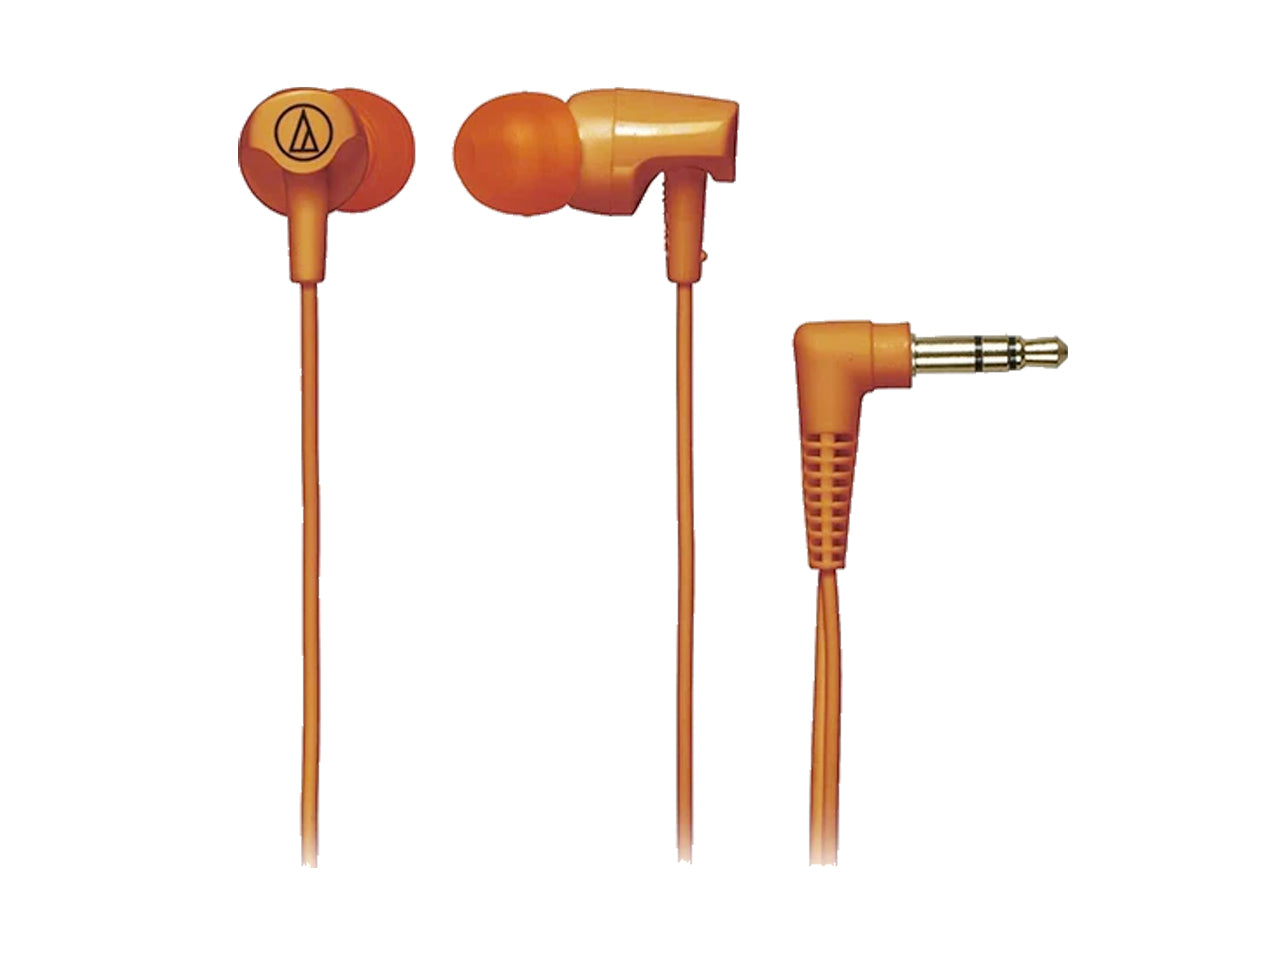 AUDIO-TECHNICA IN-EAR HEADPHONE WITH CORD WRAP (Orange)-computerspace